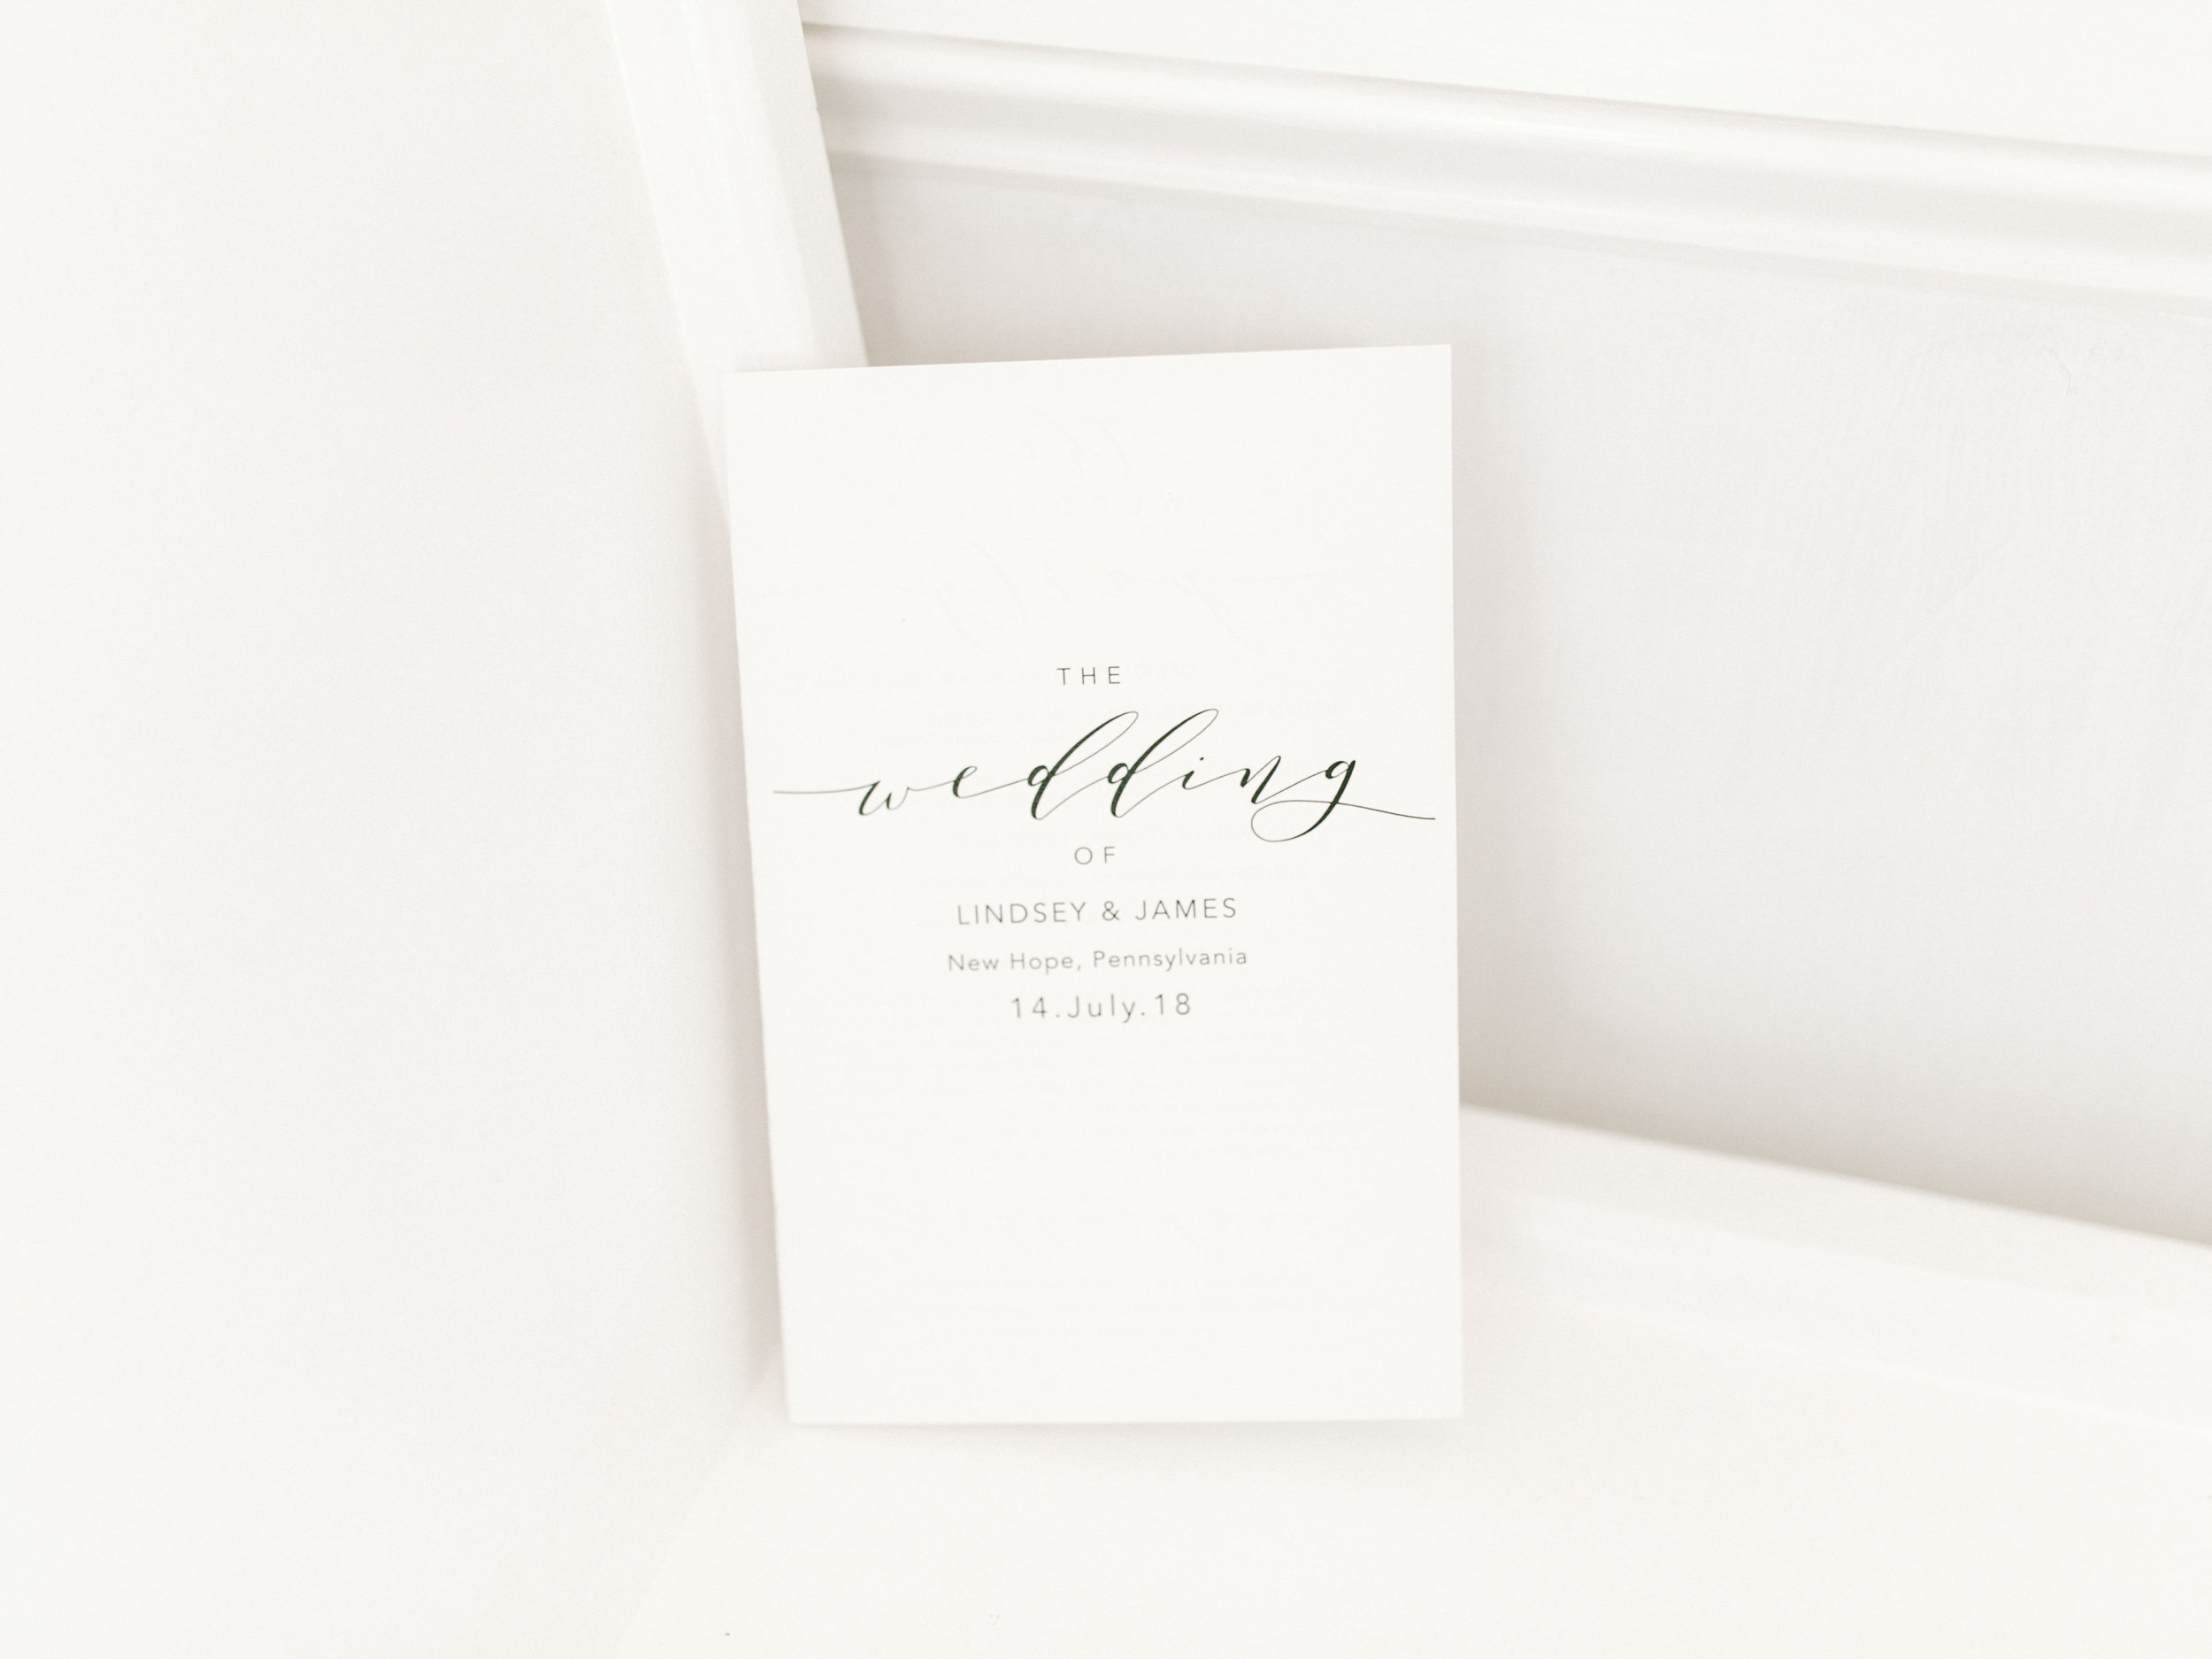 Simple in black and white, we love this minimal look for a wedding program for a modern wedding.